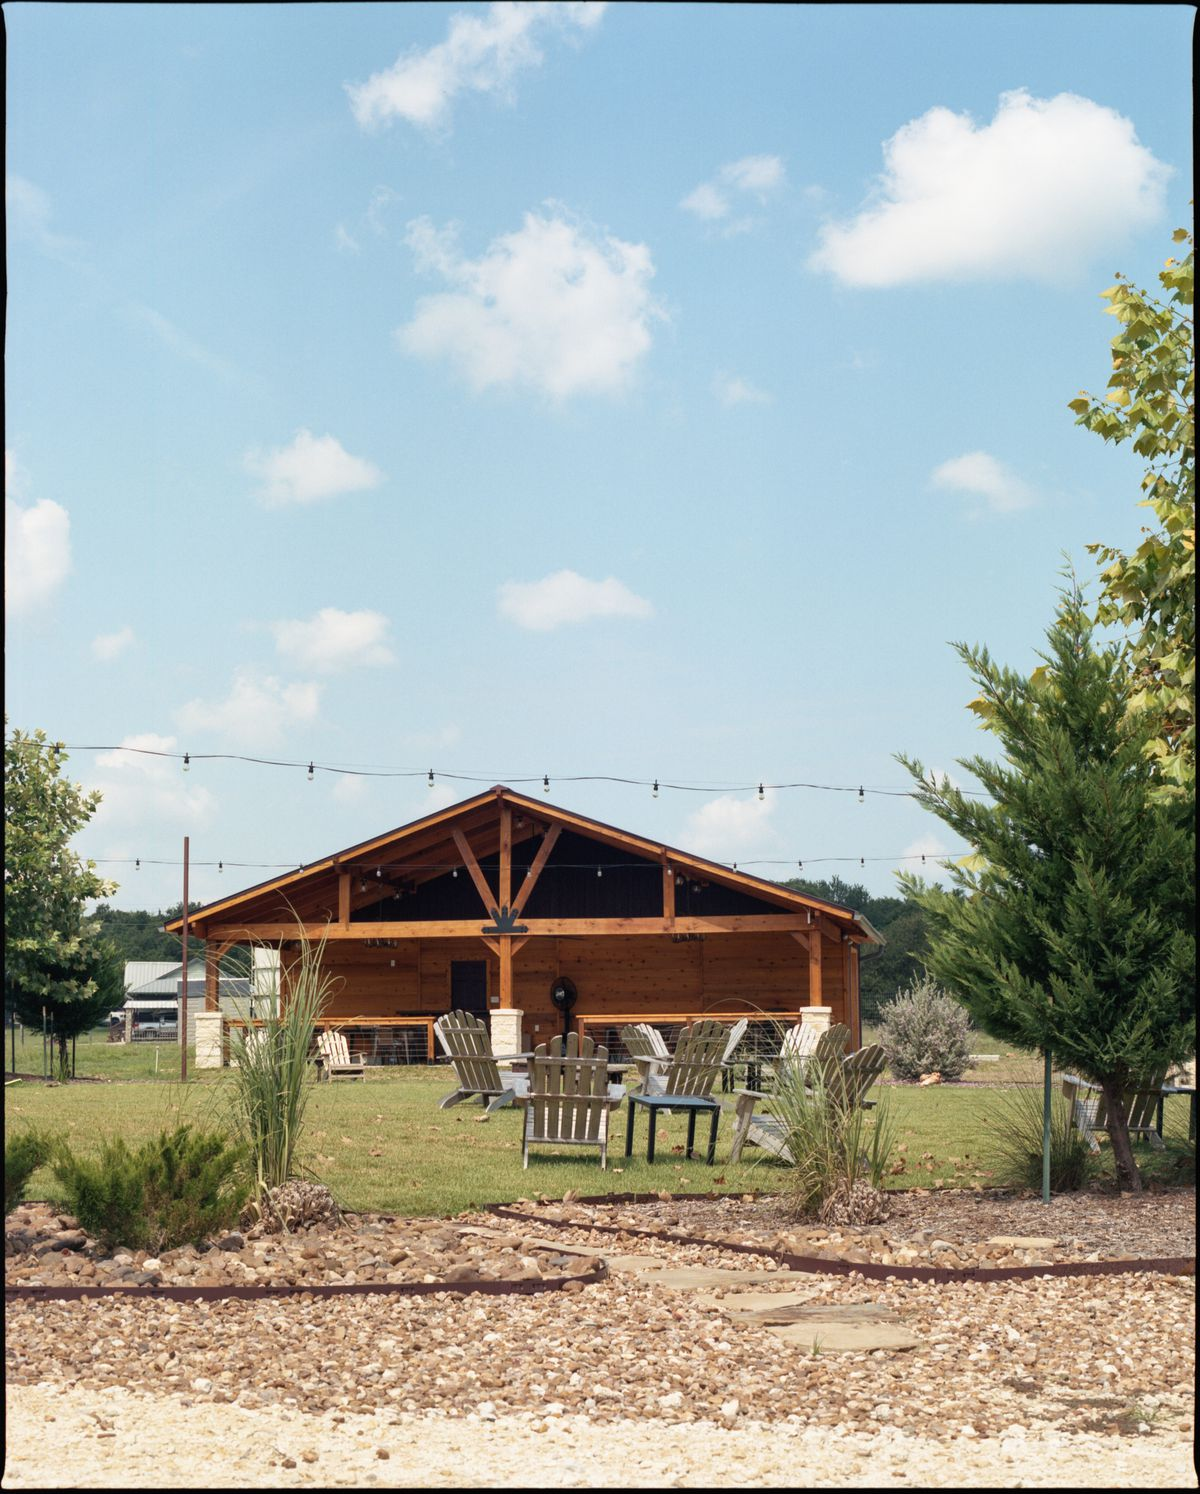 A wooden A-frame in the distance, with green grass, scattered green plants, lawn tables and chairs, and hanging string lights in the foreground.